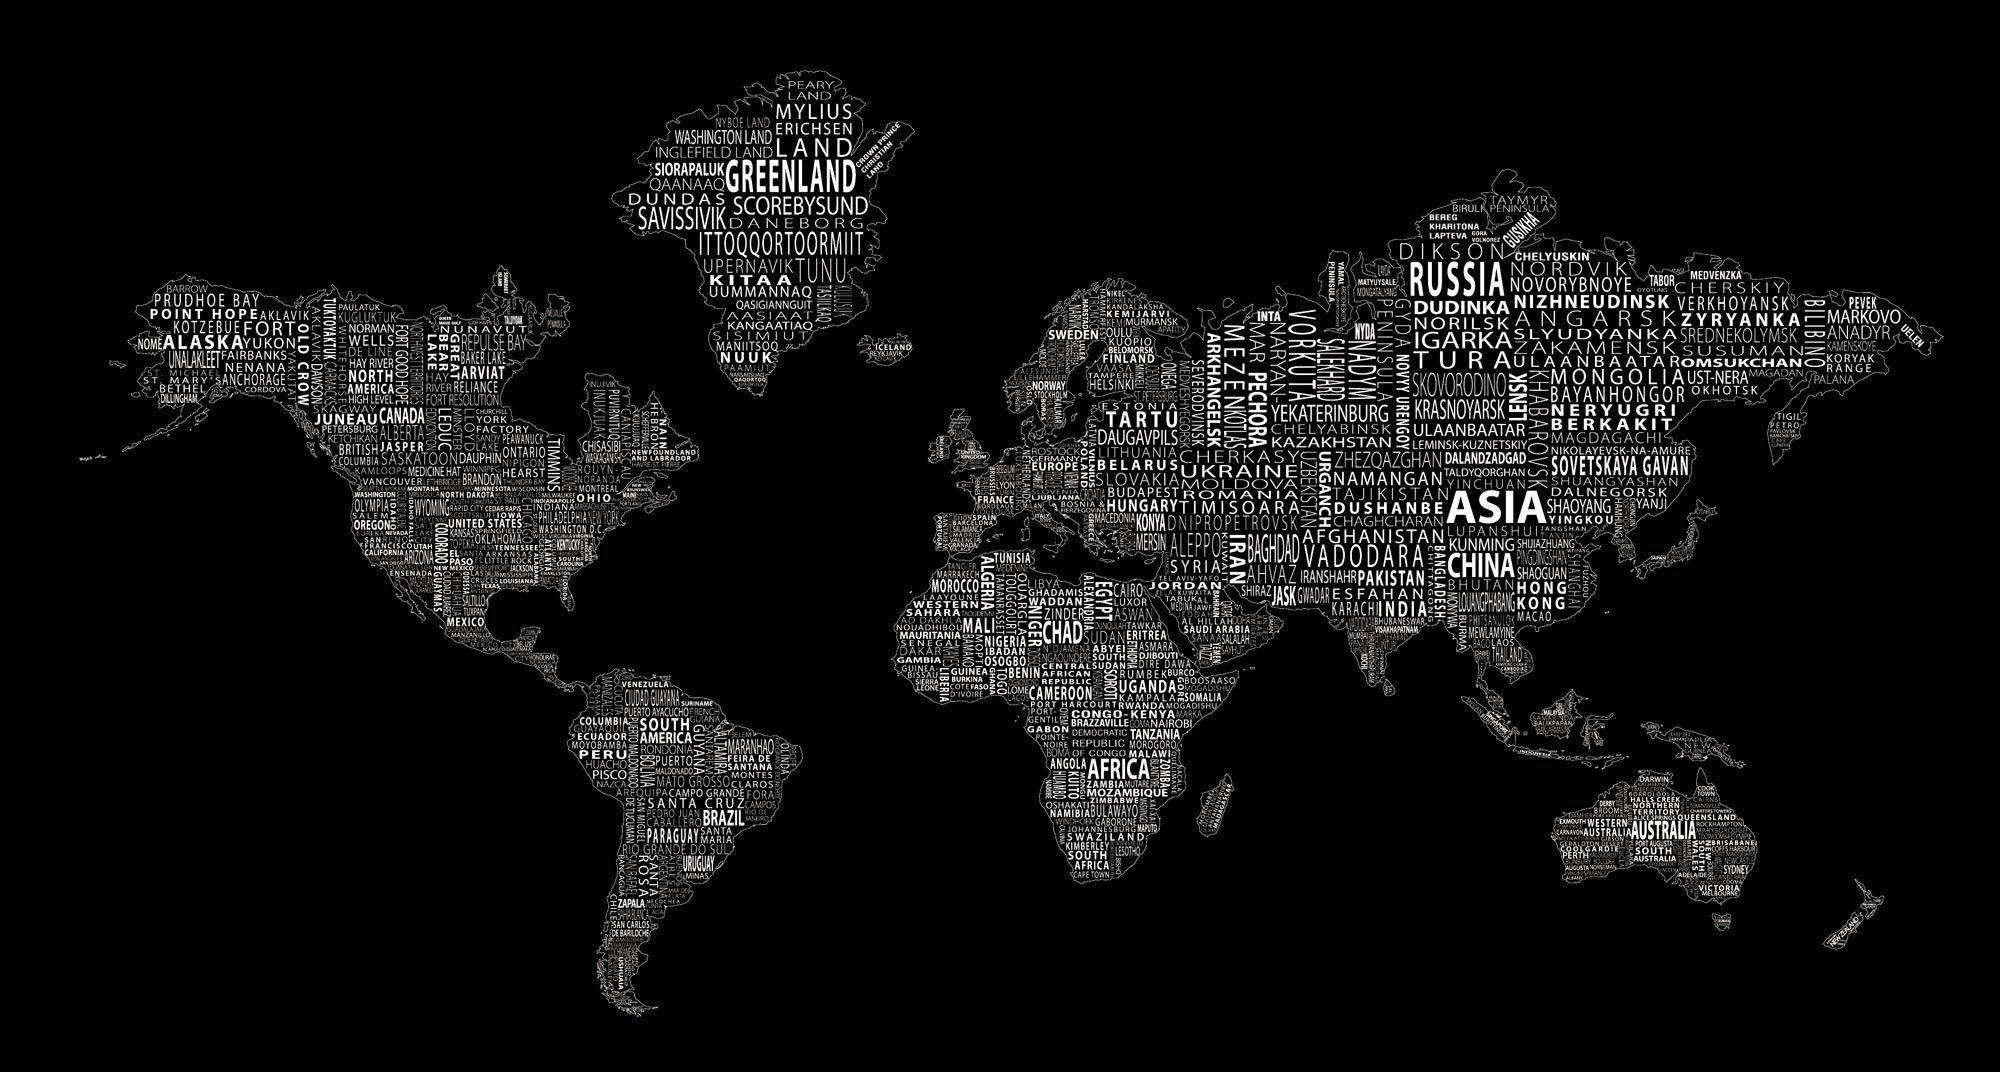 1 World Text Map Wall Mural White On Black Map Wall Mural Wallpaper Notebook Aesthetic Desktop Wallpaper